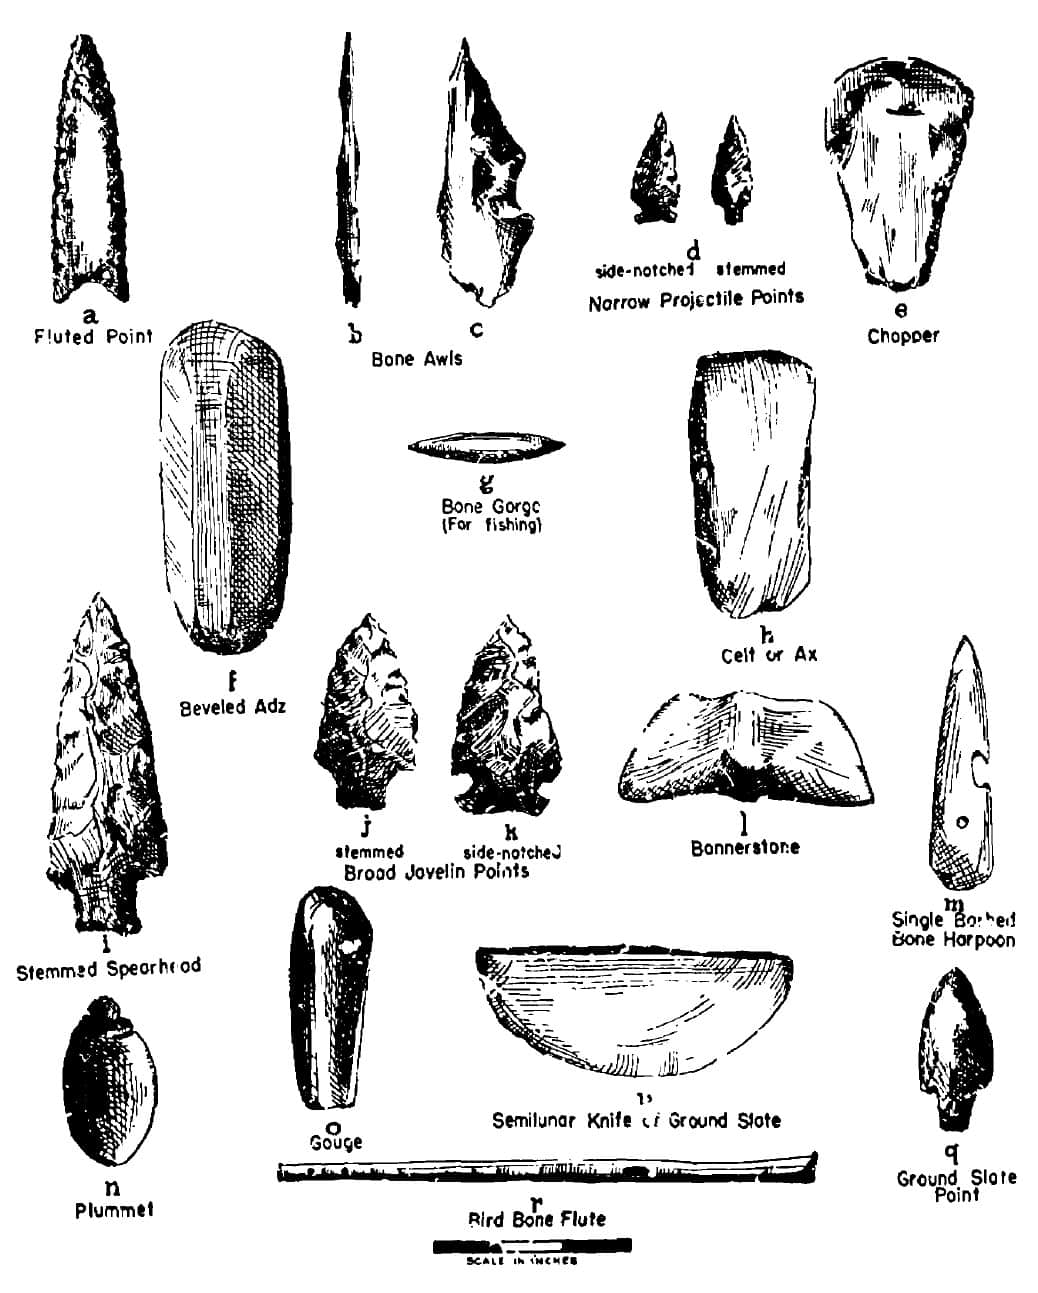 paleo-and-archaic-artifacts-from-william-ritchie-ny-state-educational Archaic Period (3,500 - 1,300 B.C.) Jeremy Dennis On This Site